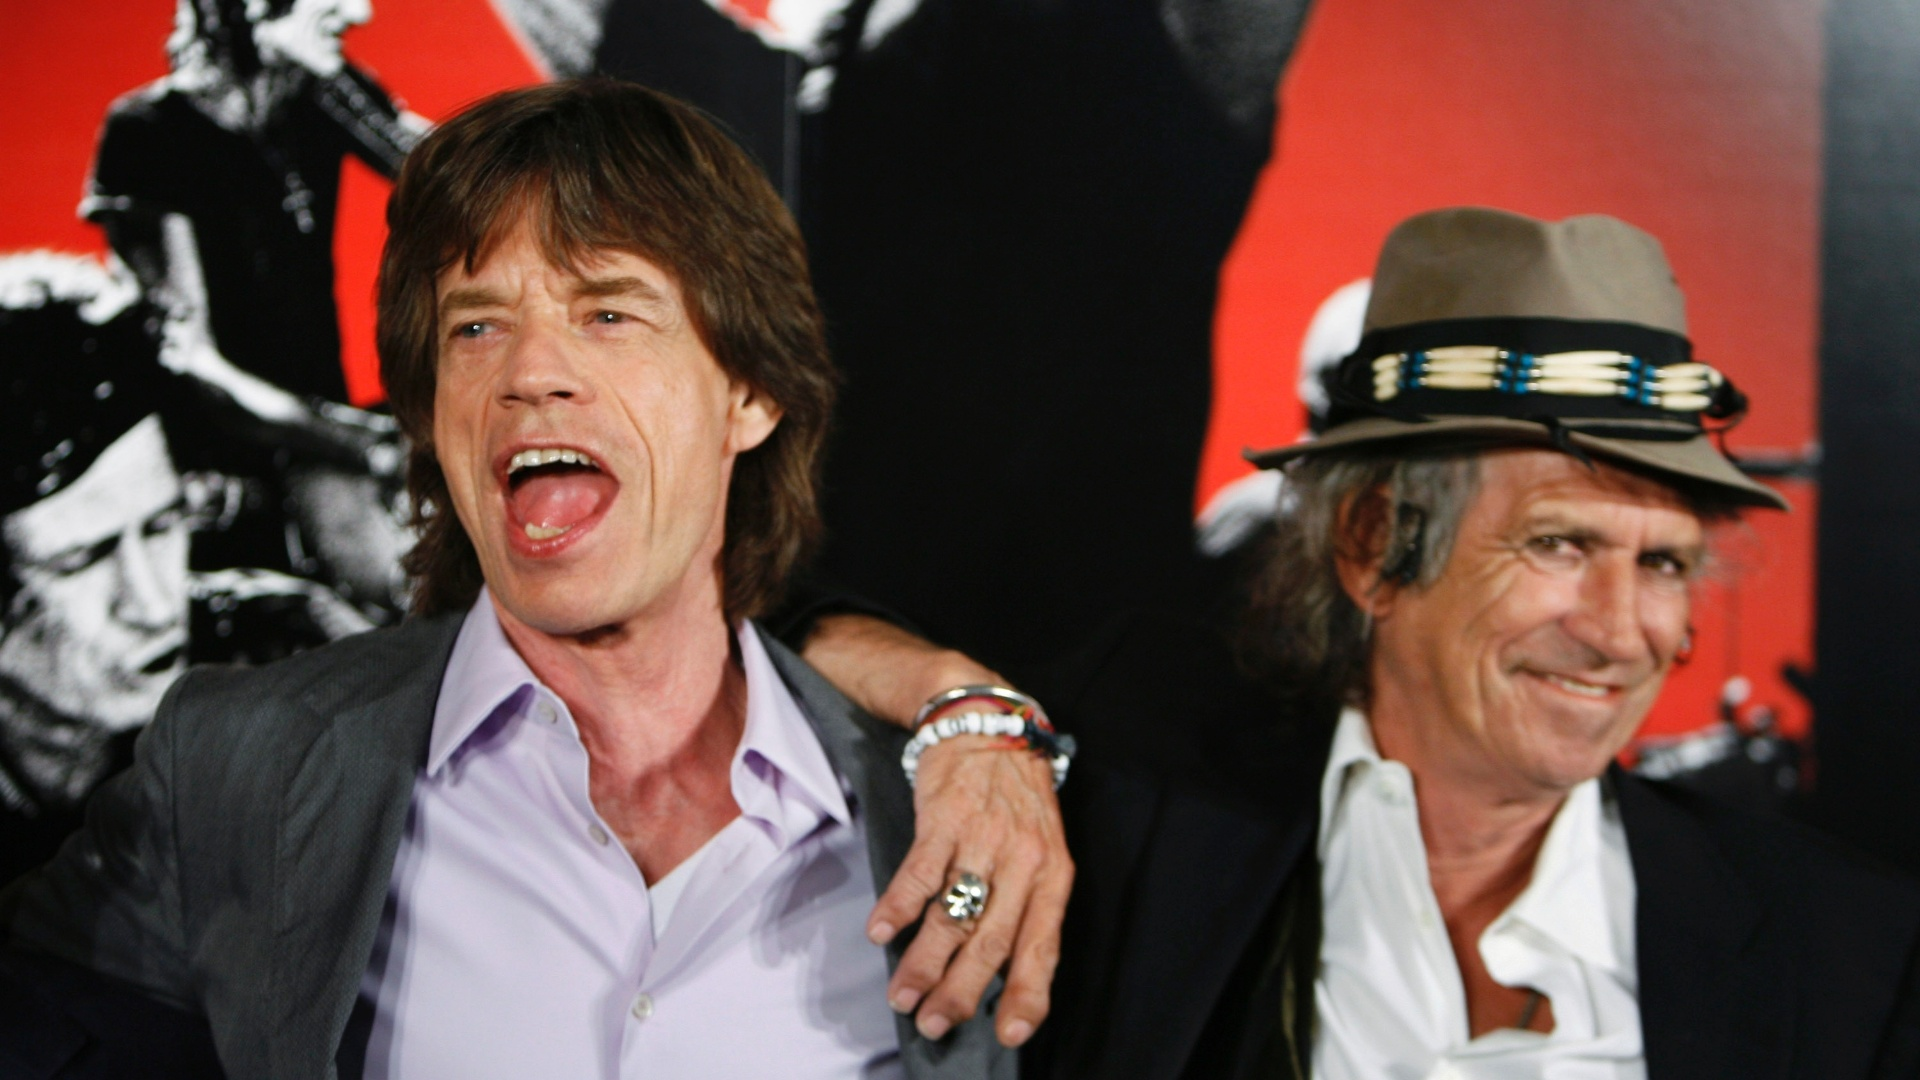 Mick Jagger e Keith Richards durante evento do documentrio 